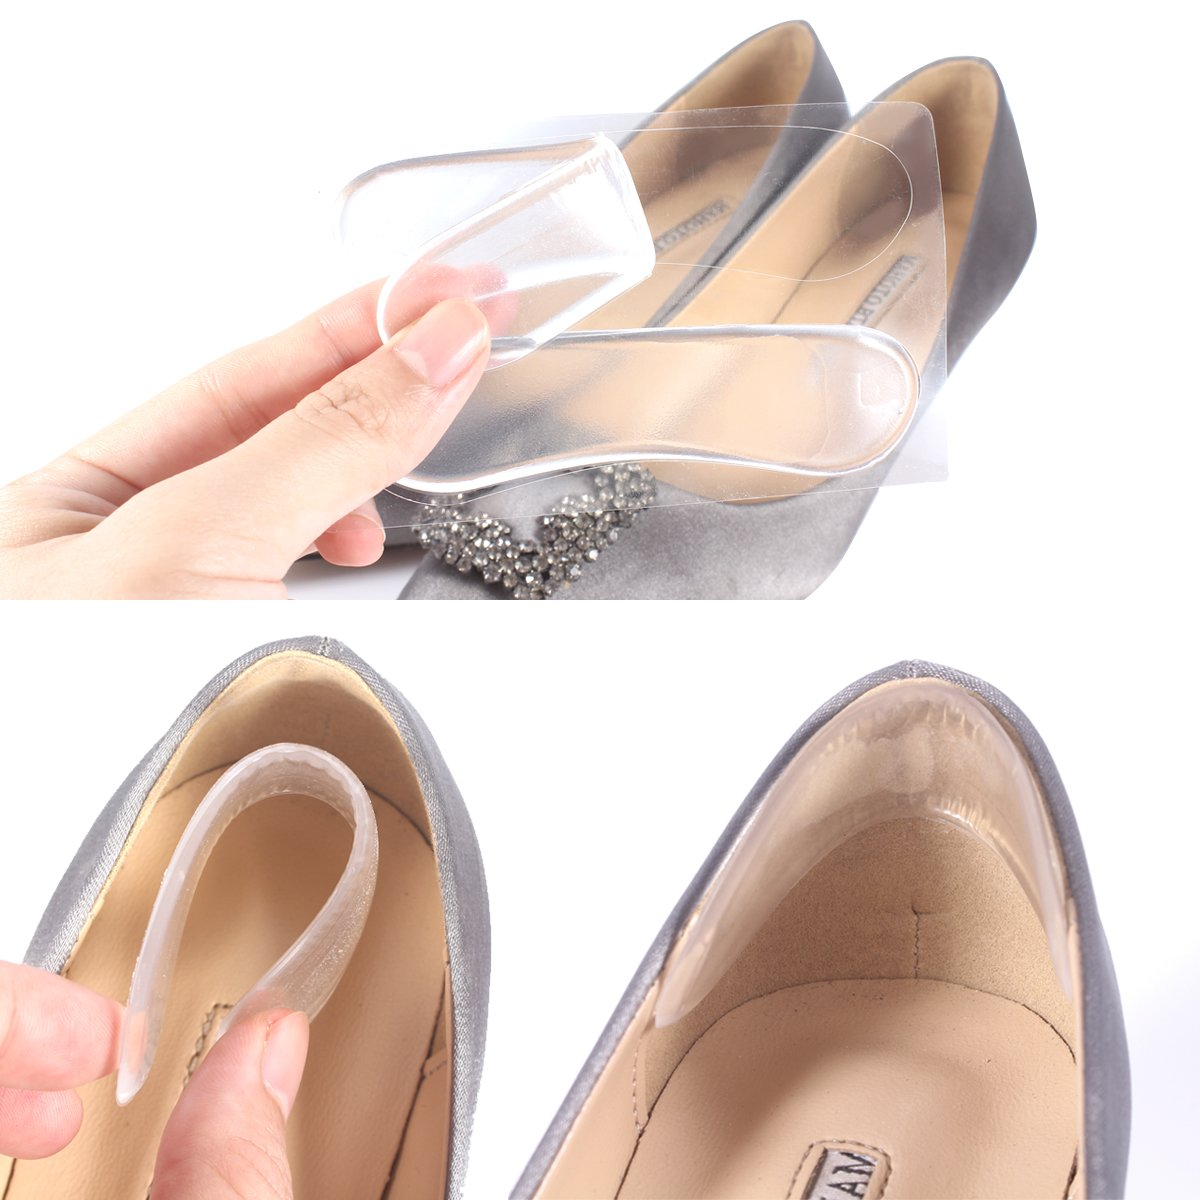 502b20be46 Amazon.com: Heel Grips Liners, Back Heel Insoles Cushions for High Heels  from Babo Care, Gel Shose Inserts for Men & Women,Include Free 1 Pair Ball  of Foot ...